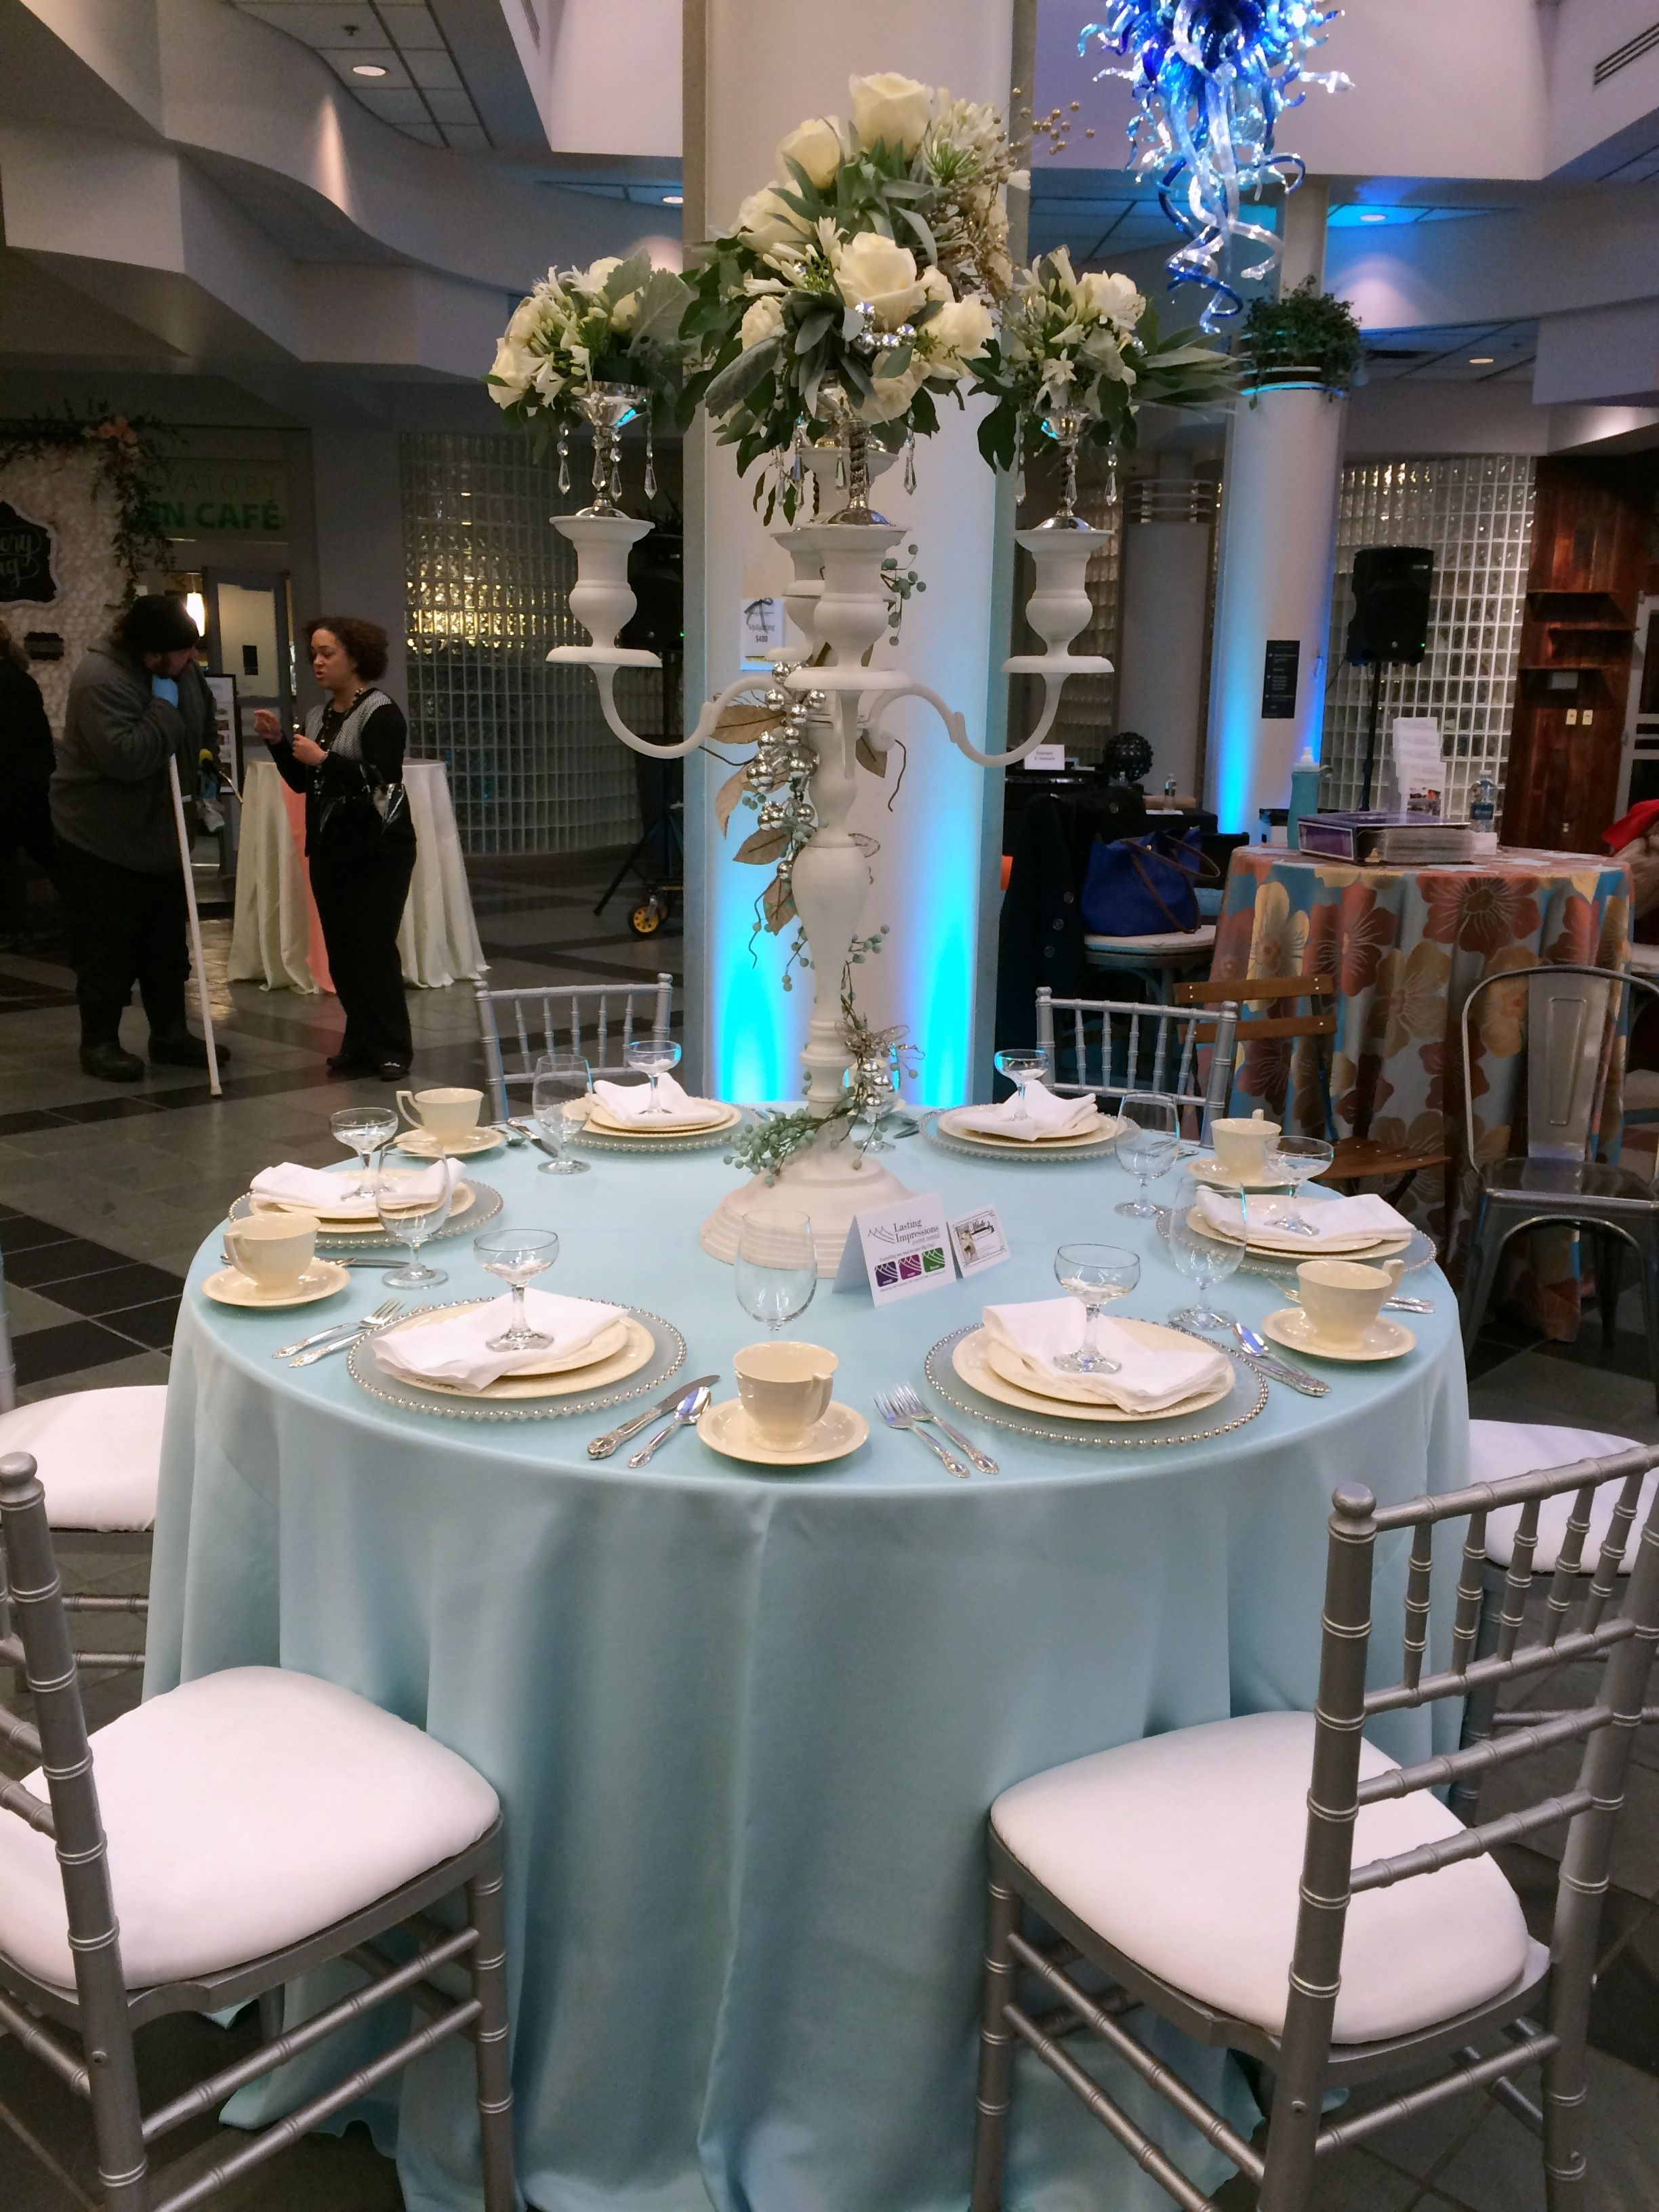 franklin park conservatory wedding showcase aqua bengaline linen artistic accents tablecloth mixed with silver ivory the table florals provided mikelle hickman romine patio chair